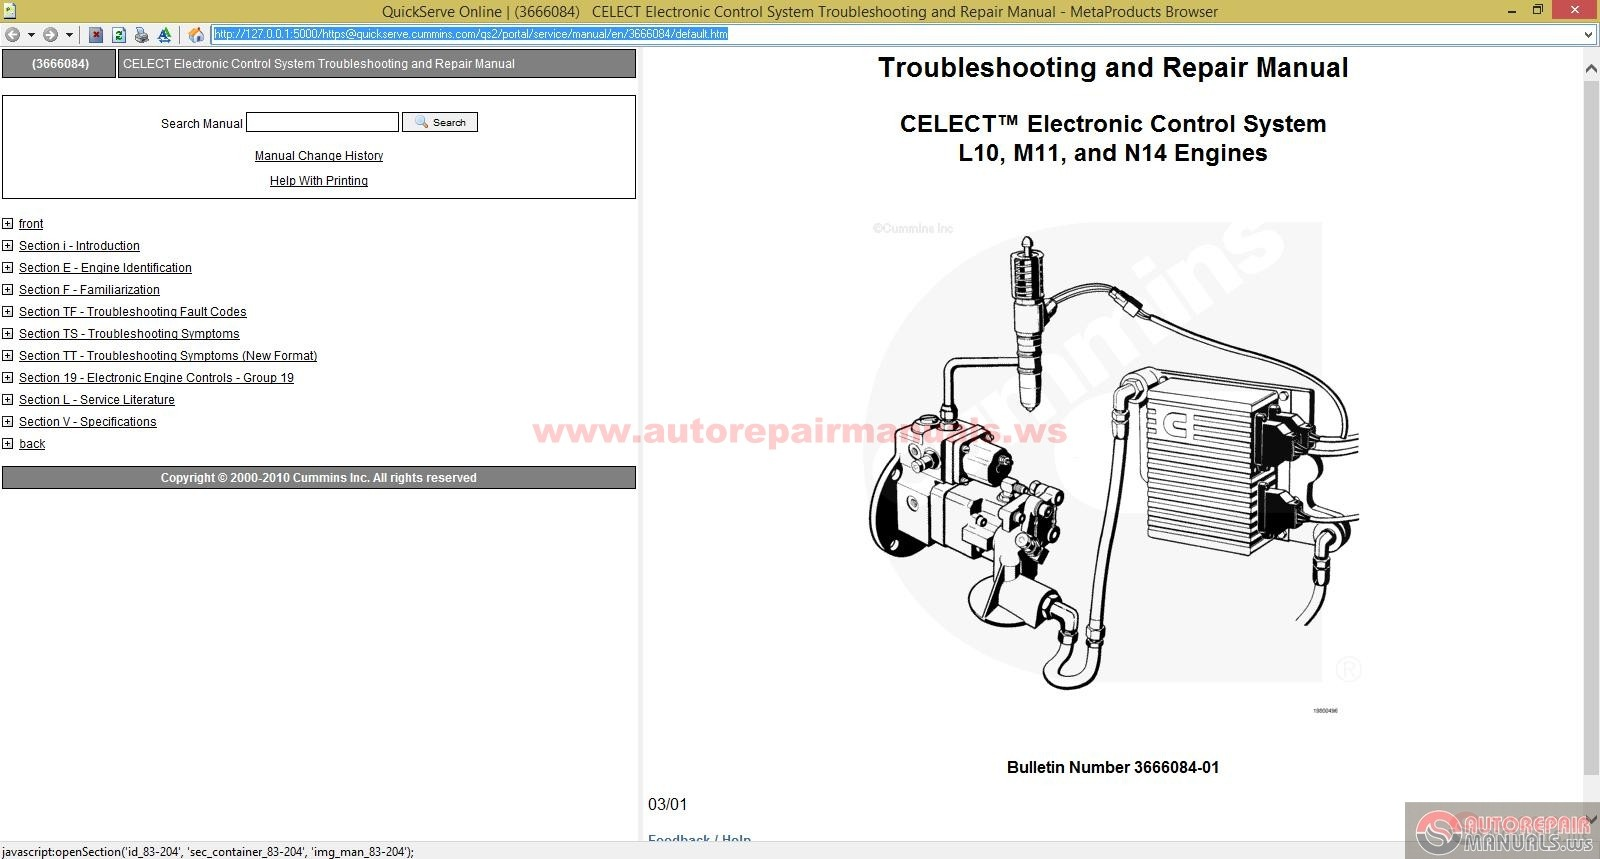 cummins celect electronic system troubleshooting and repair manual auto repair manual